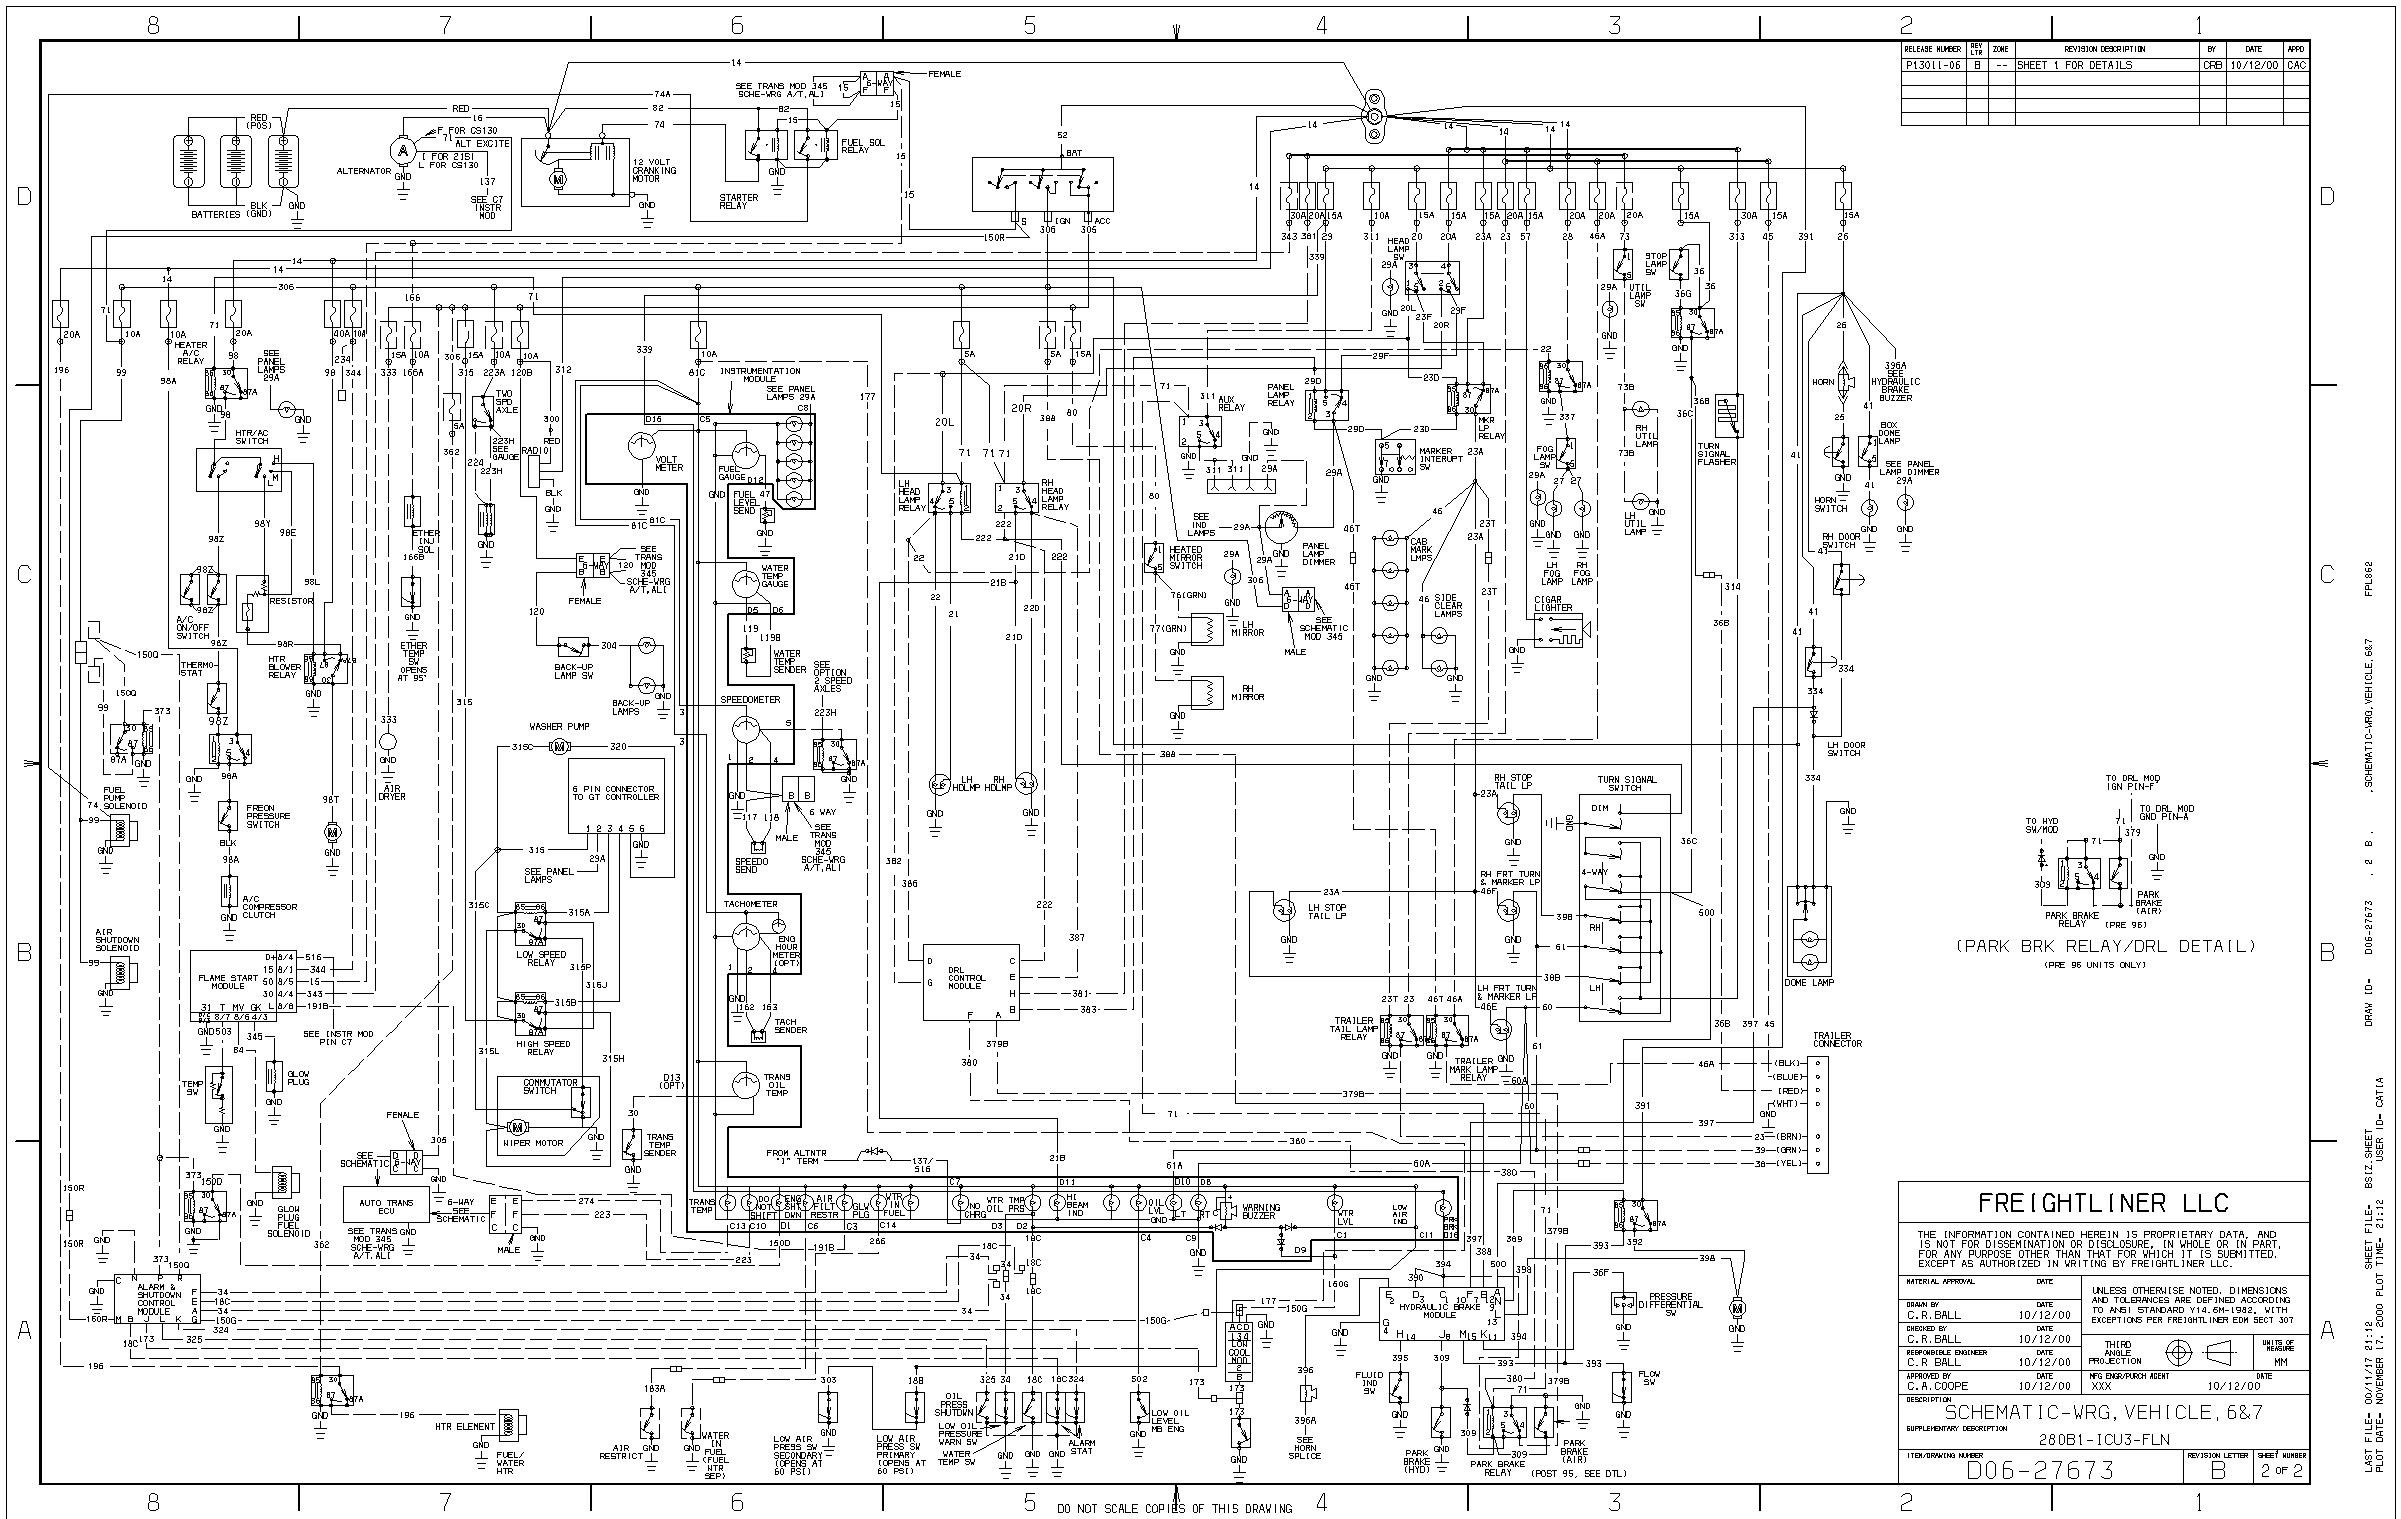 2002 toyota Camry Engine Diagram Wiring Diagram Sterling Truck Wiring  Diagrams 2003 toyota Camry 2 4